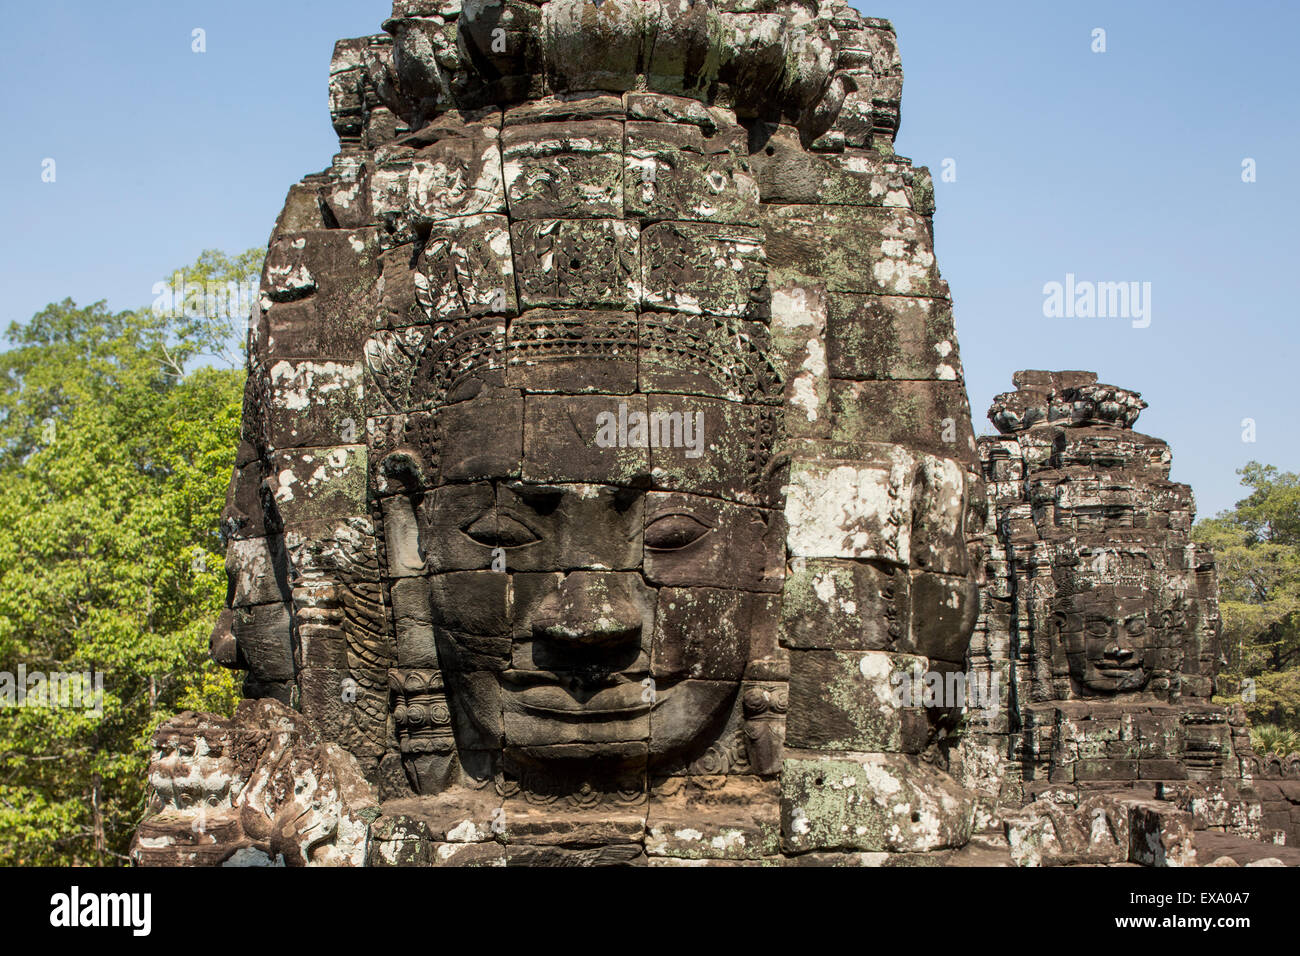 Asia cambodia siem reap stone carvings of the th